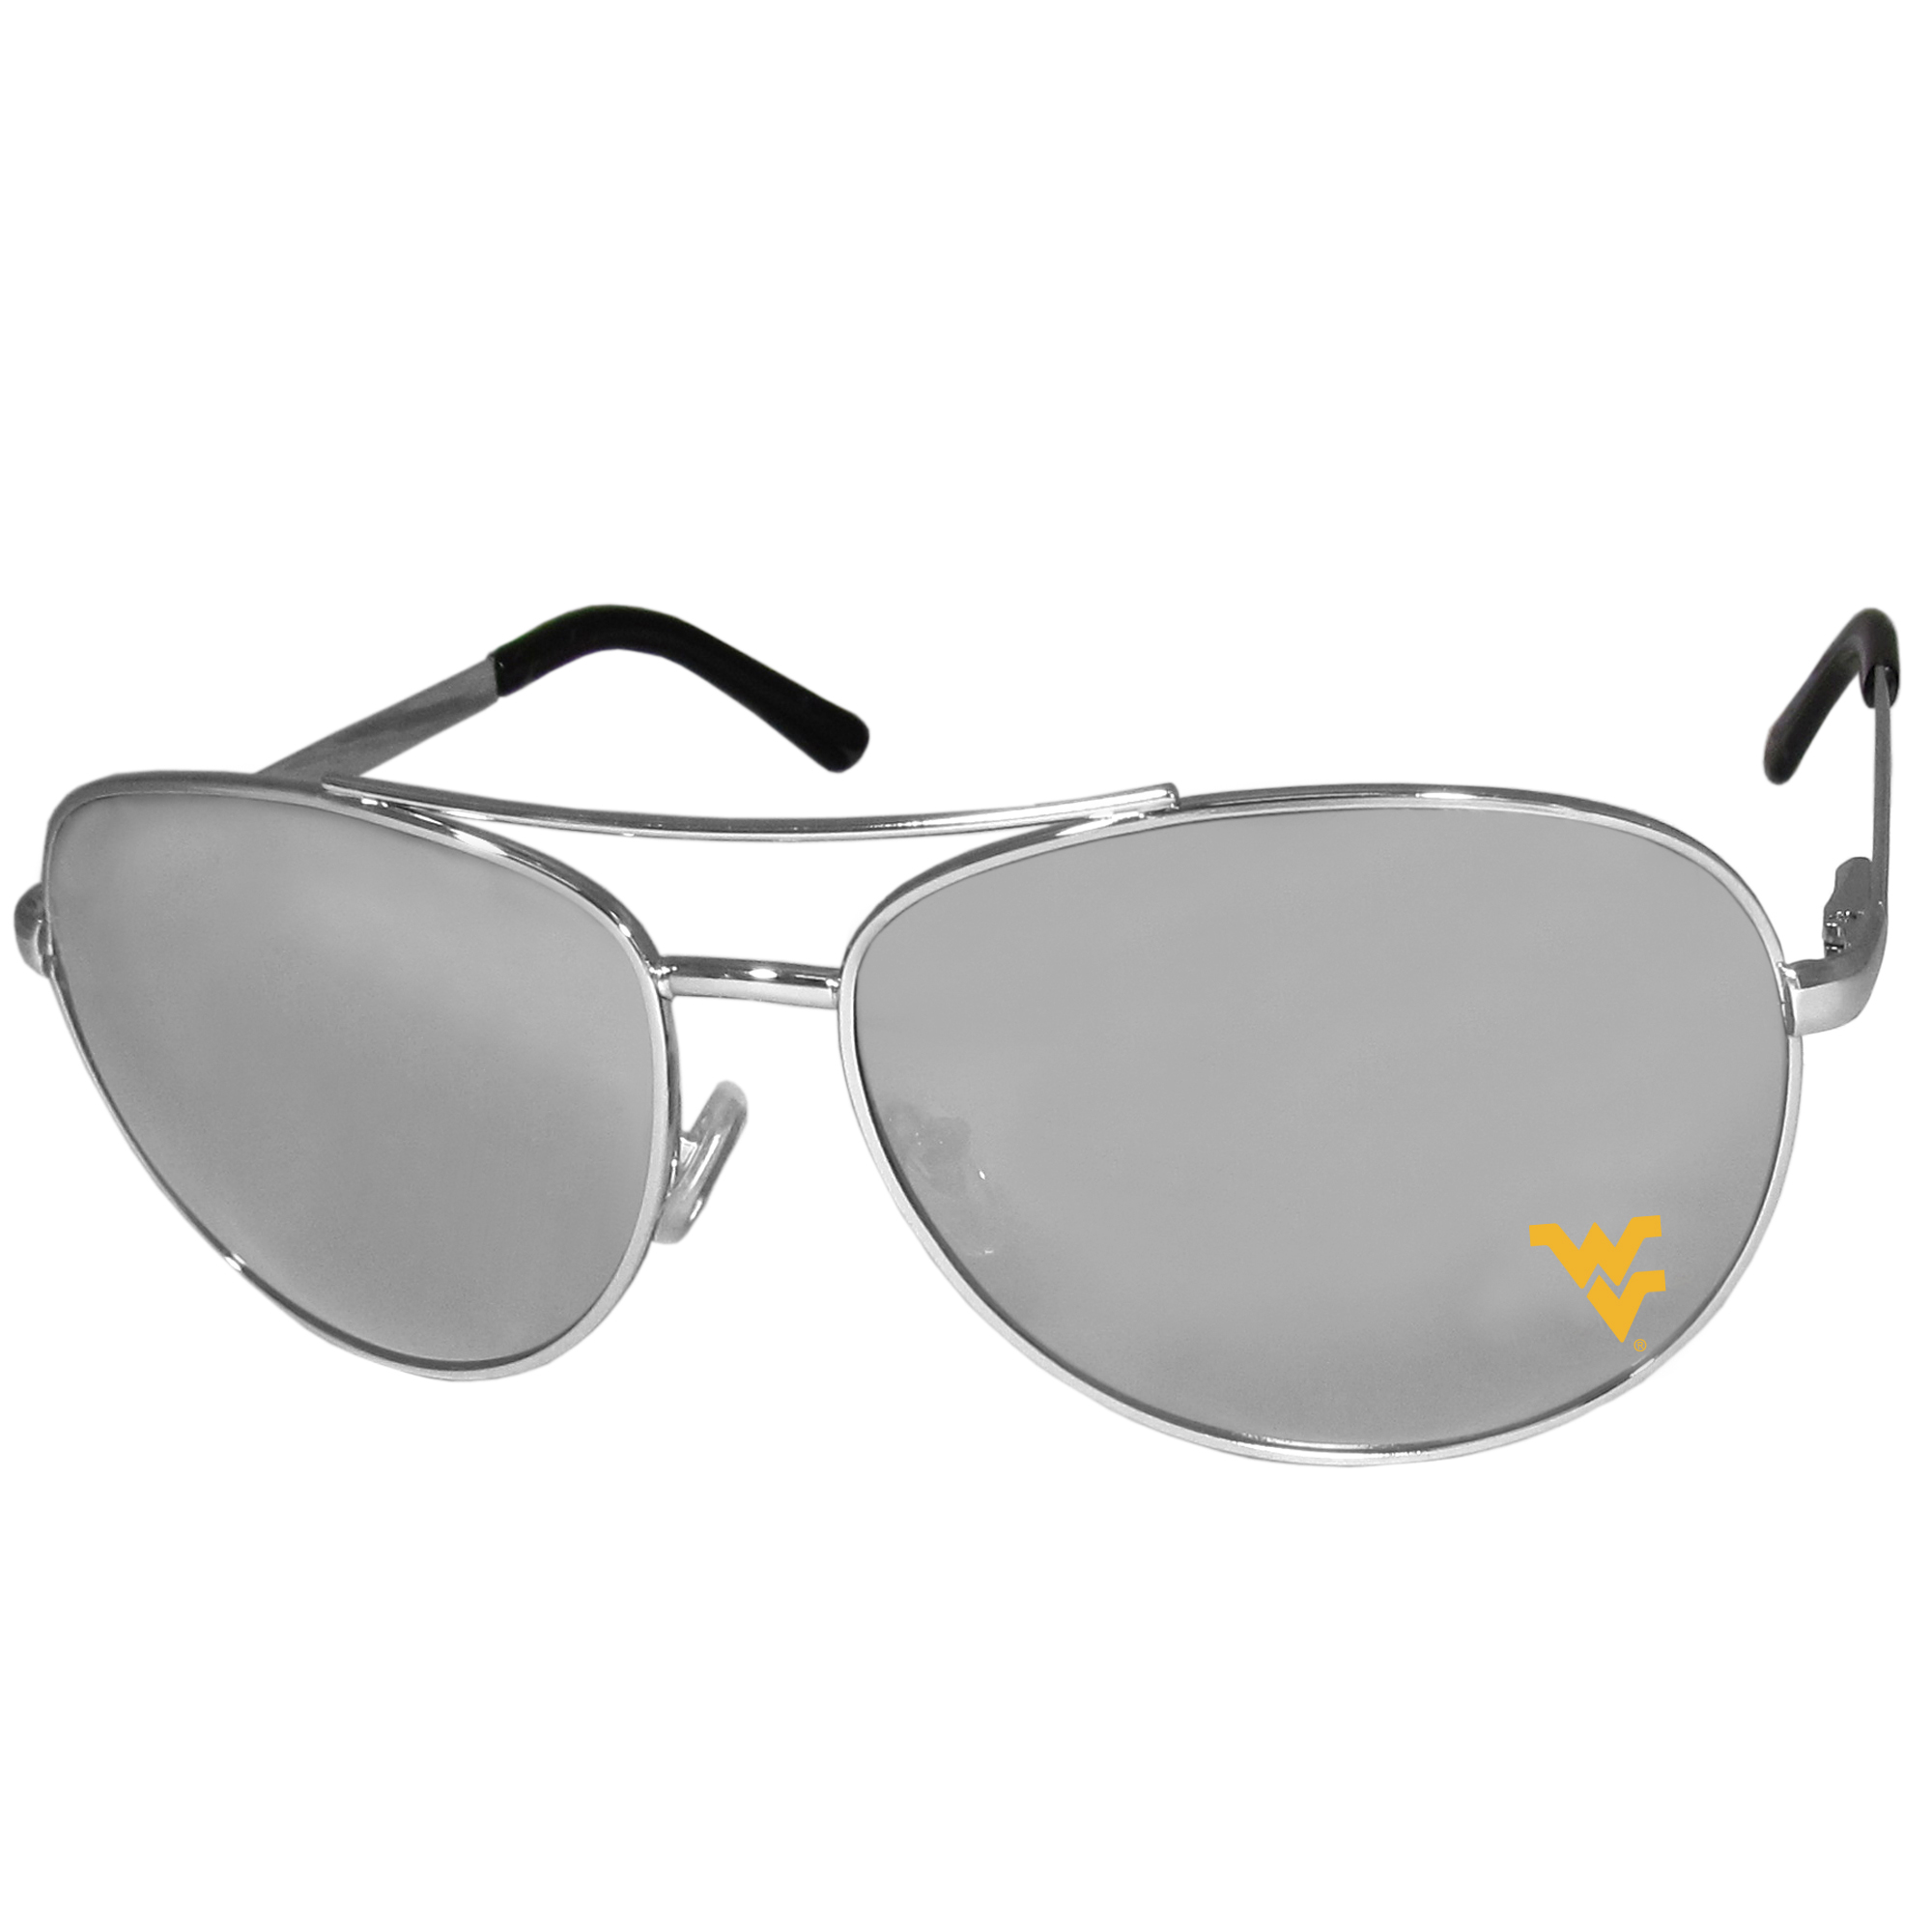 W. Virginia Mountaineers Aviator Sunglasses - Our aviator sunglasses have the iconic aviator style with mirrored lenses and metal frames. The glasses feature a silk screened W. Virginia Mountaineers logo in the corner of the lense. 100% UVA/UVB protection.